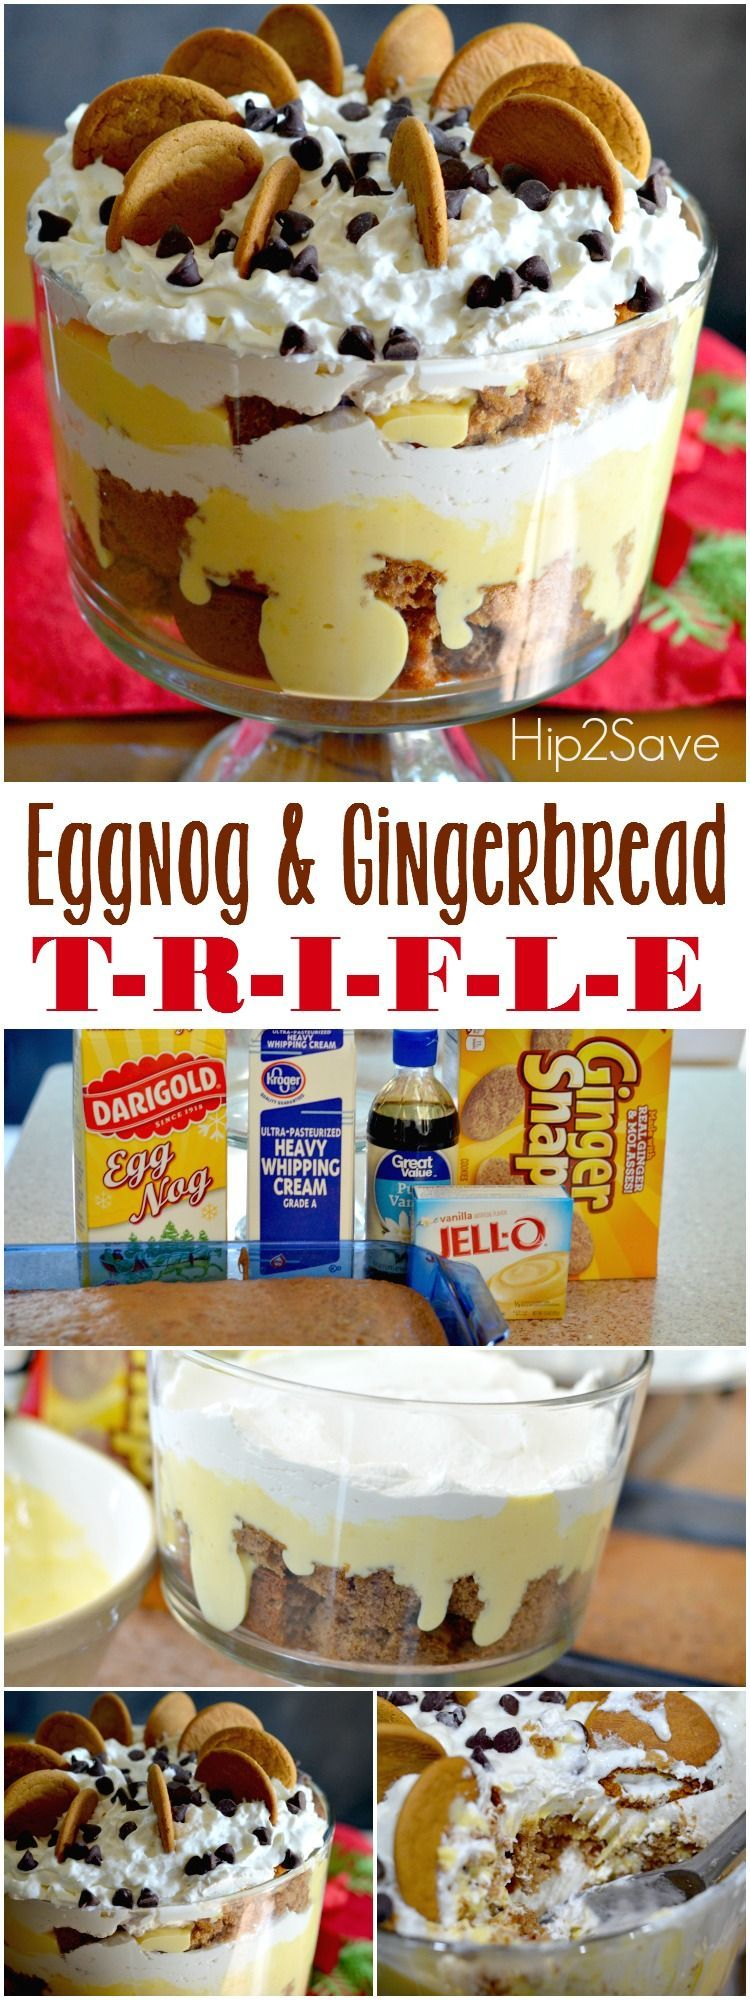 Gingerbread Trifle Eggnog Gingerbread Trifle. Great. A great winter and holiday treat.  – Eggnog Gingerbread Trifle. Great. A great winter and holiday treat.  –